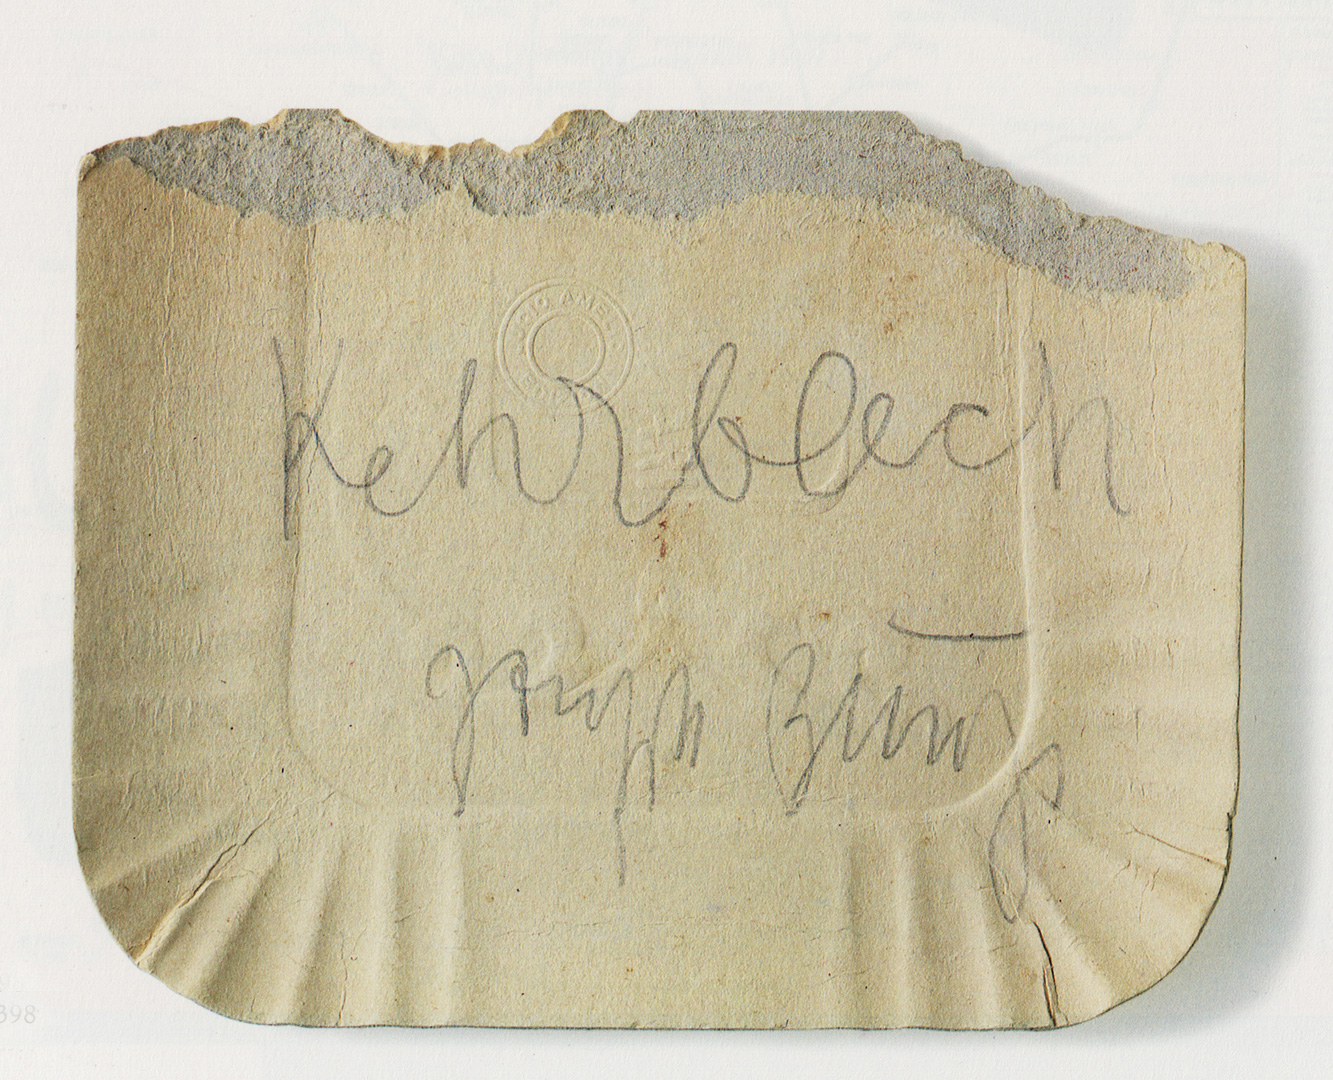 Joseph Beuys - Kehrblech, 1982, torn paper plate, inscribed